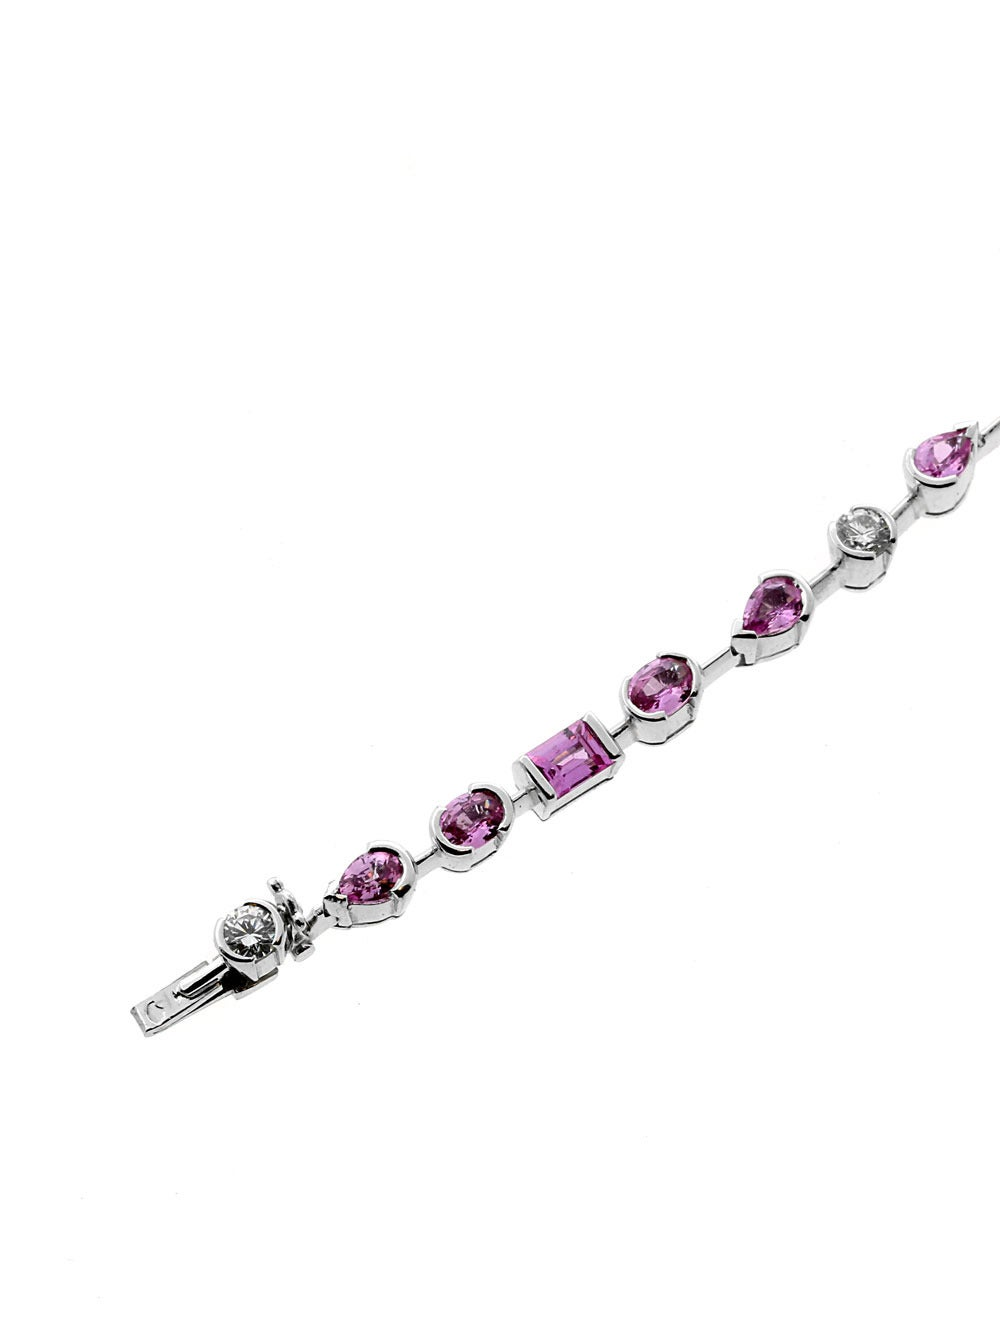 Now here's a piece that will surely not go unnoticed when worn out, a classic characteristic of the French brand Cartier. This stunning necklace is adorned with the most beautiful Pink Sapphire's and diamonds and it only weighs 23 grams. This is